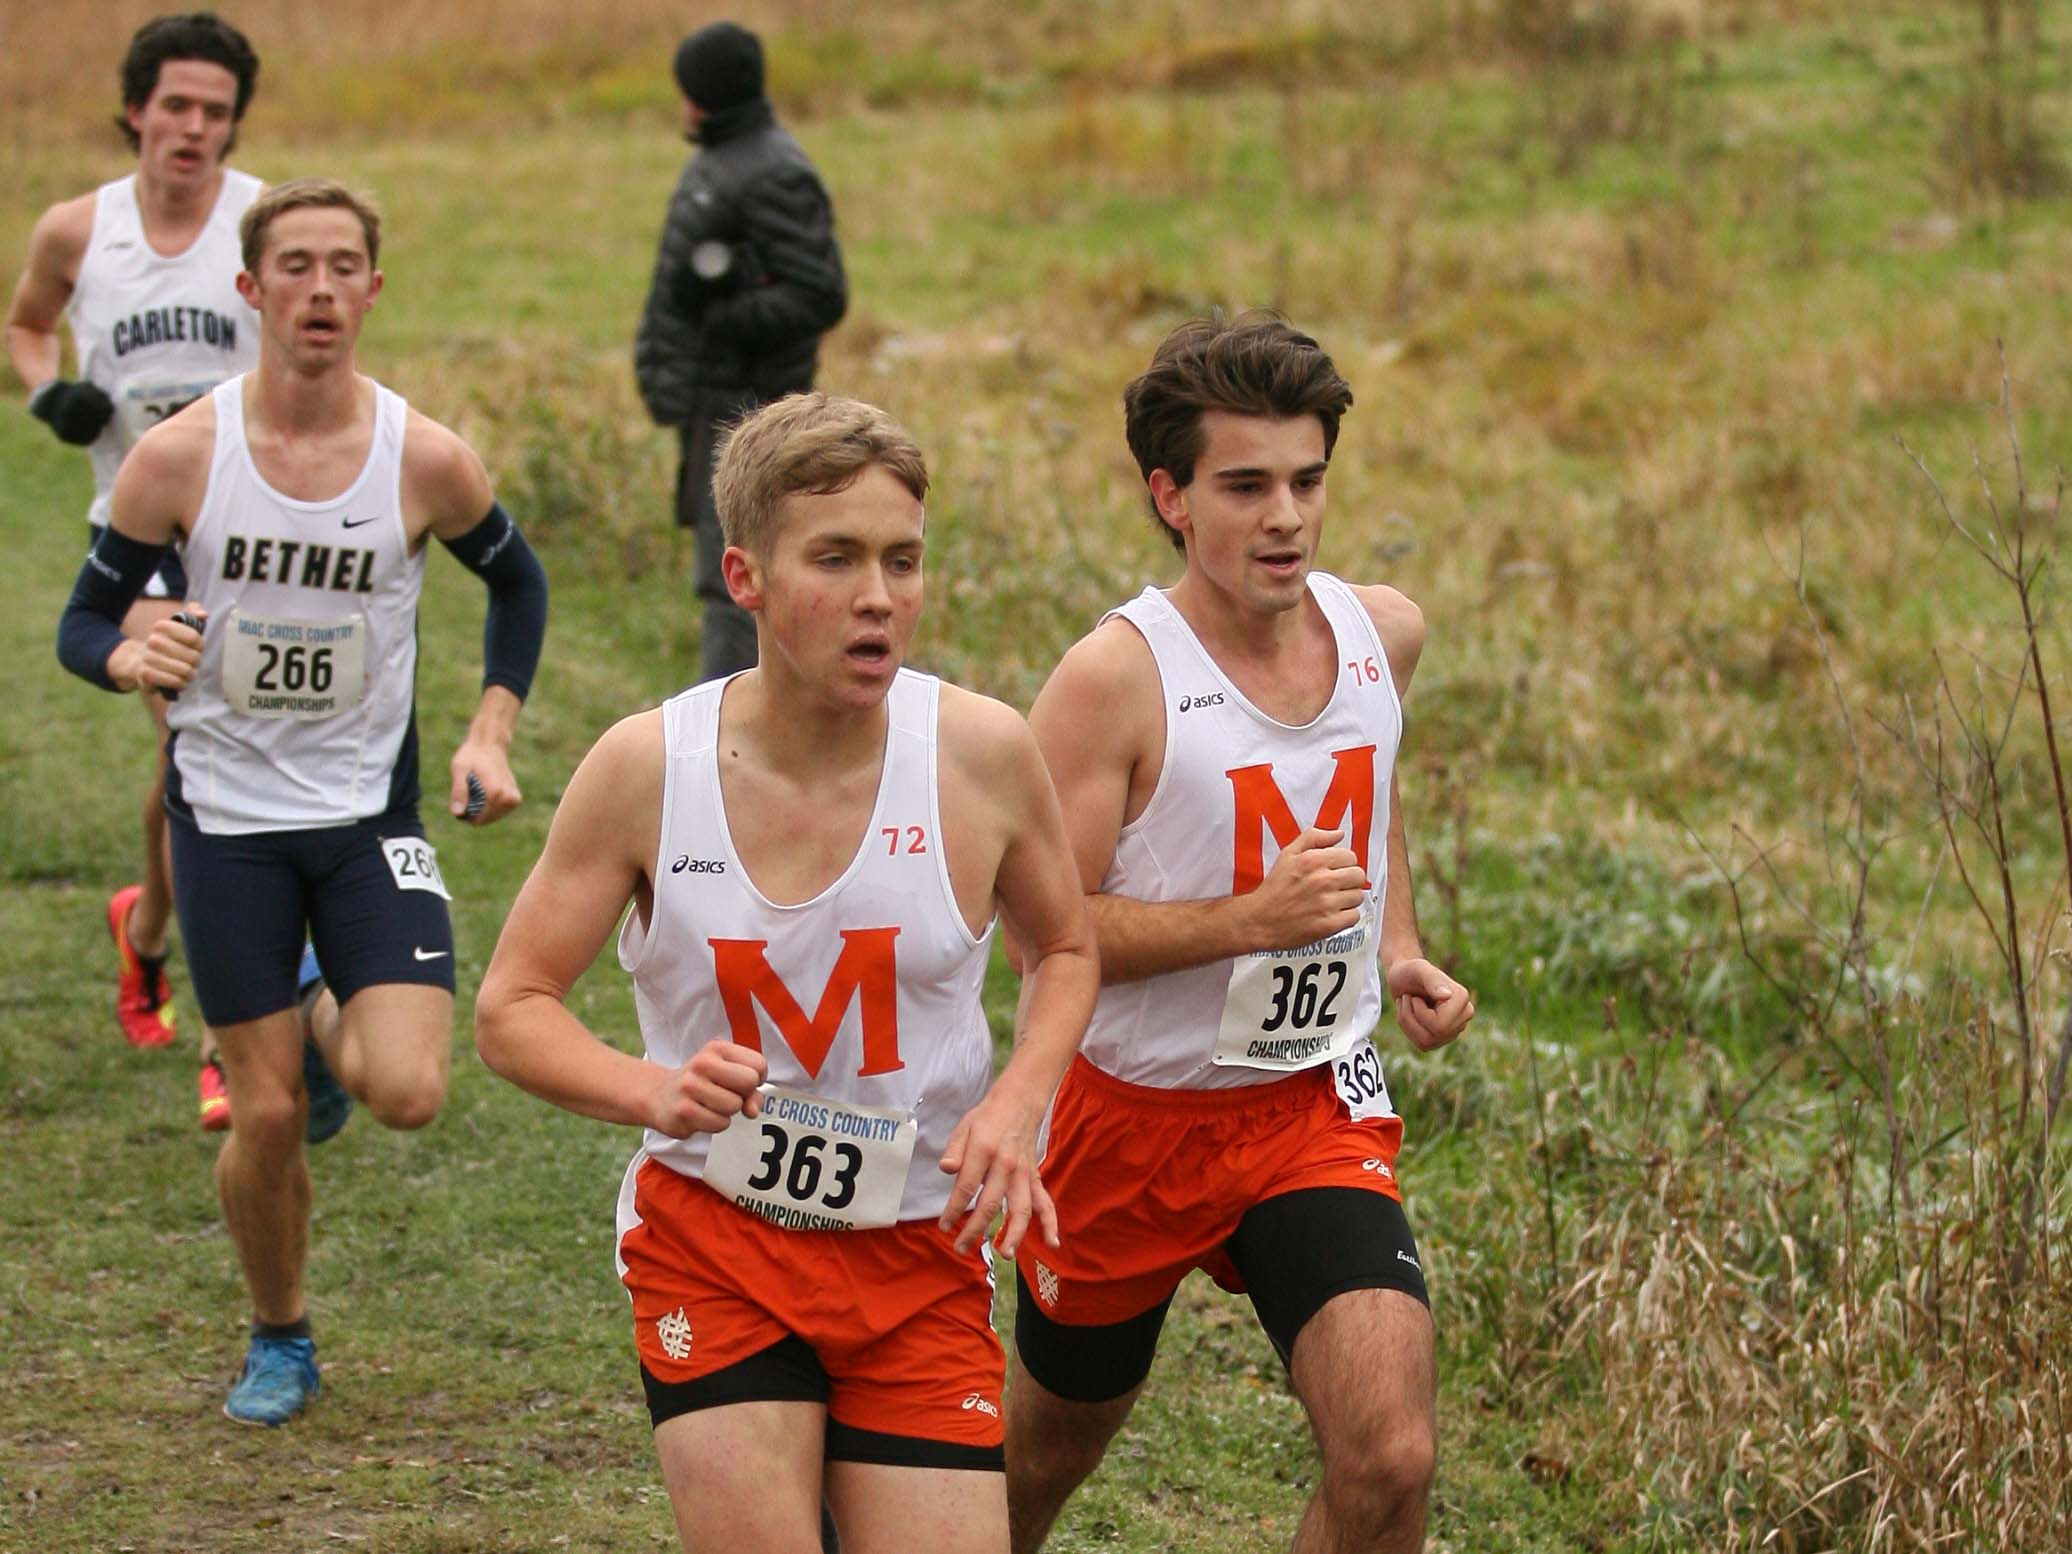 Cross Country teams reap rewards at MIAC Championship